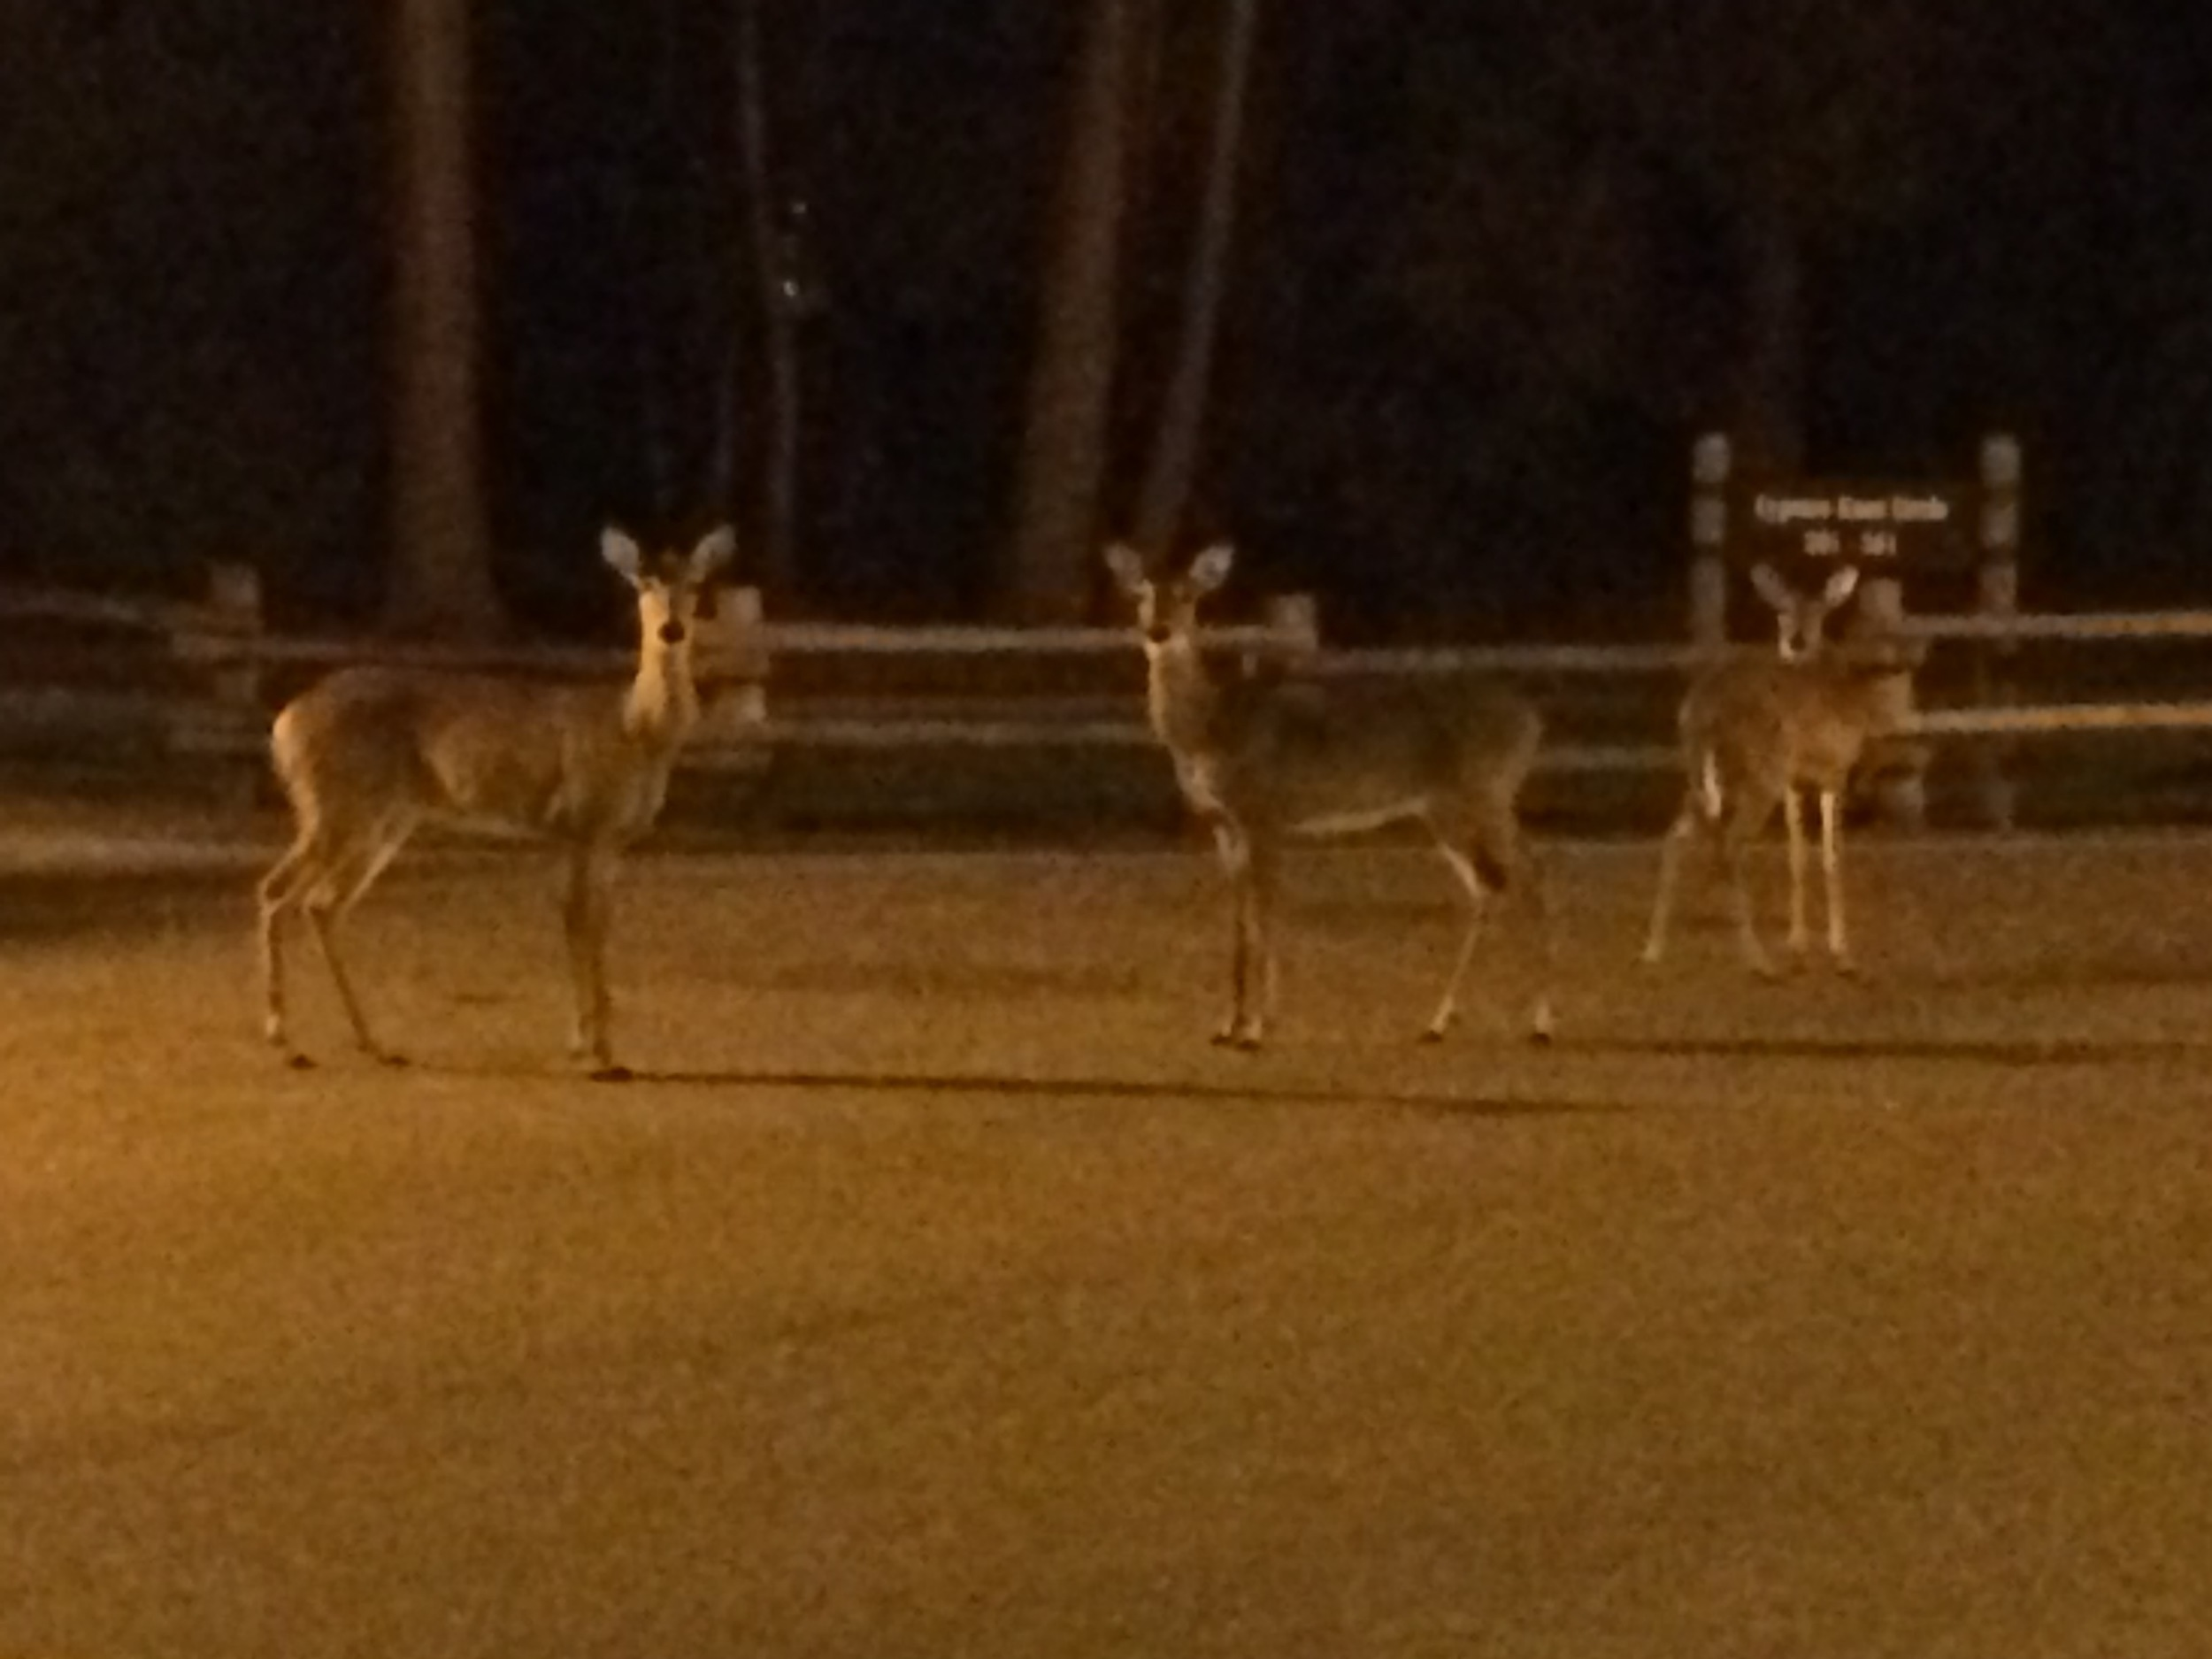 Out of control, the deer.